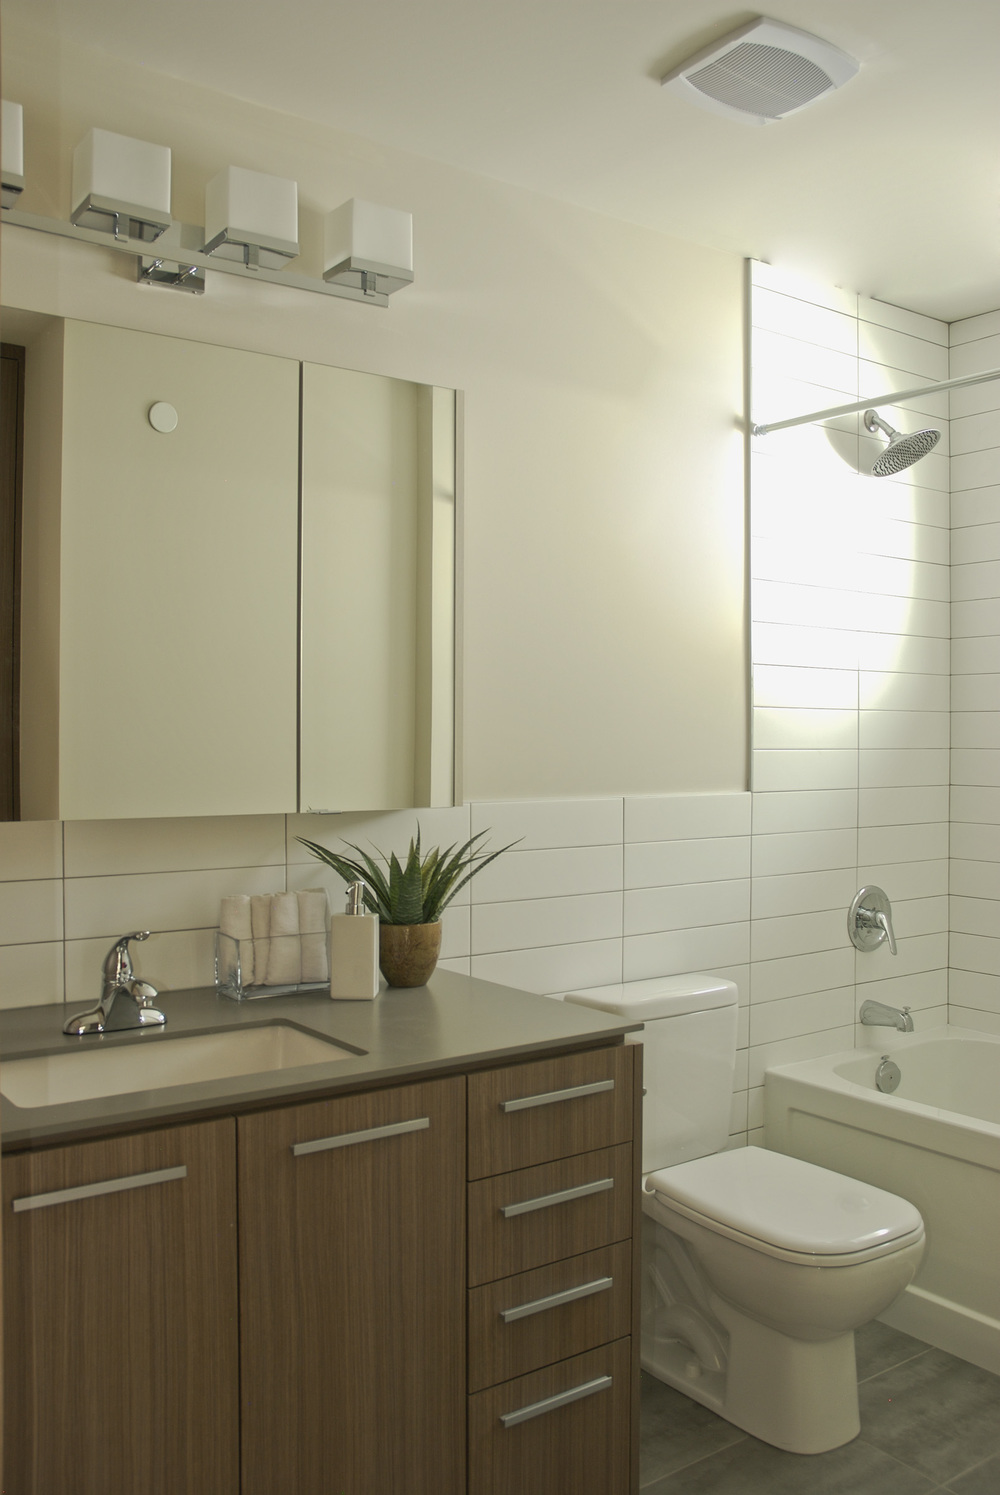 Duplex-Bathroom1.jpg